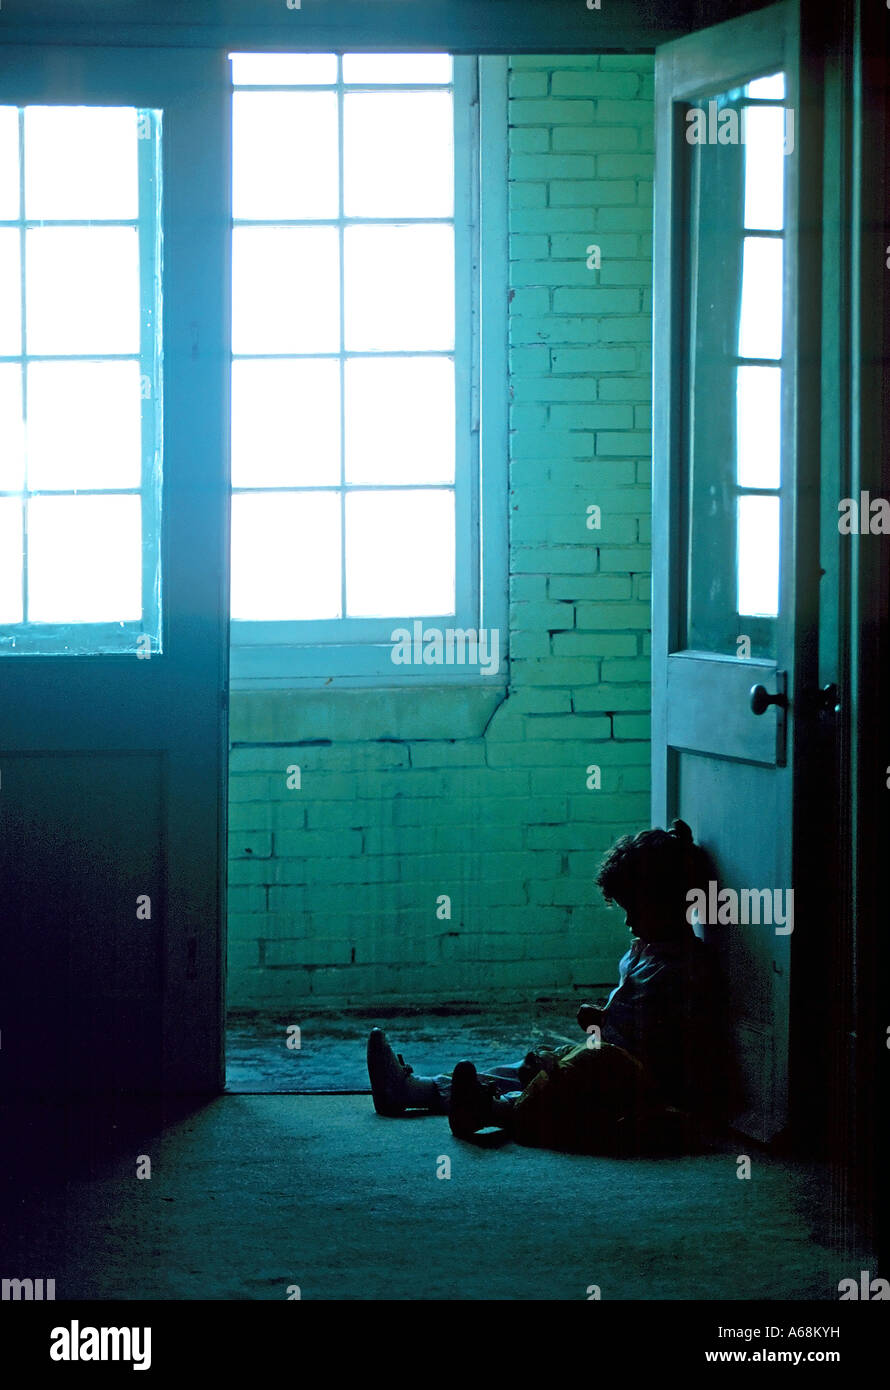 Small child sits alone in the dark dirty hallway of a rundown apartment building Stock Photo